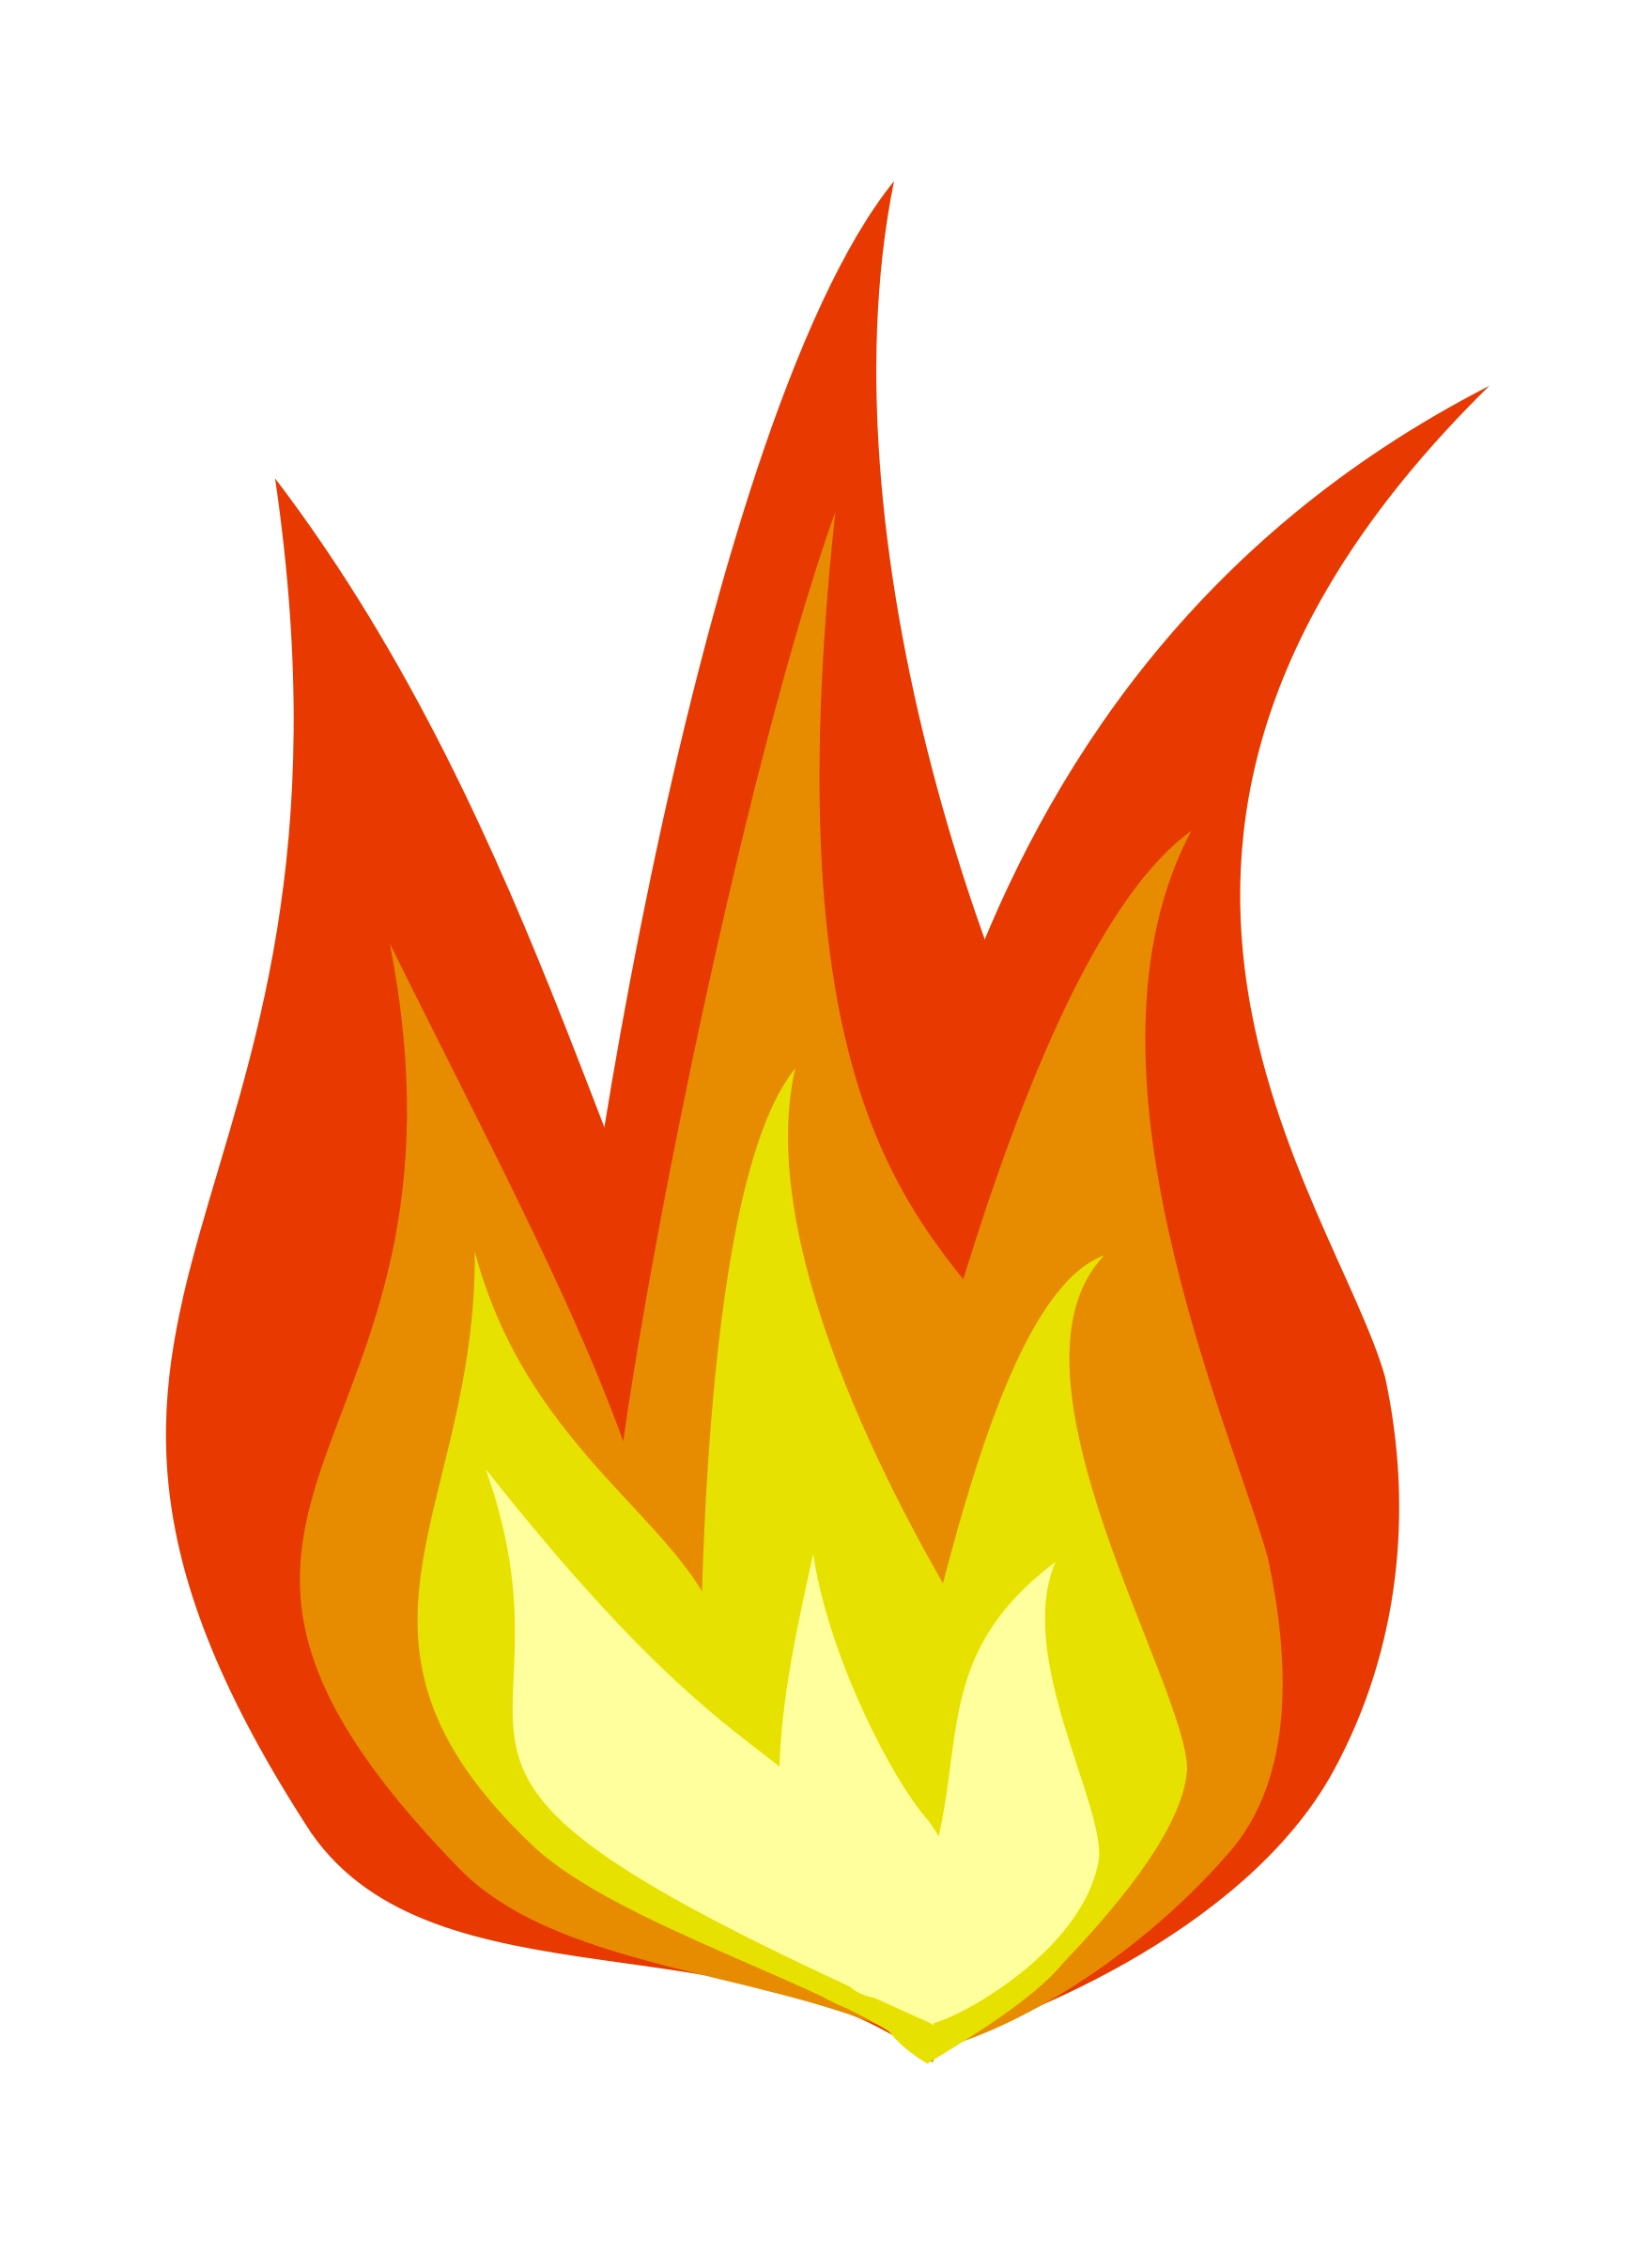 Fire clipart free download clip art on 2